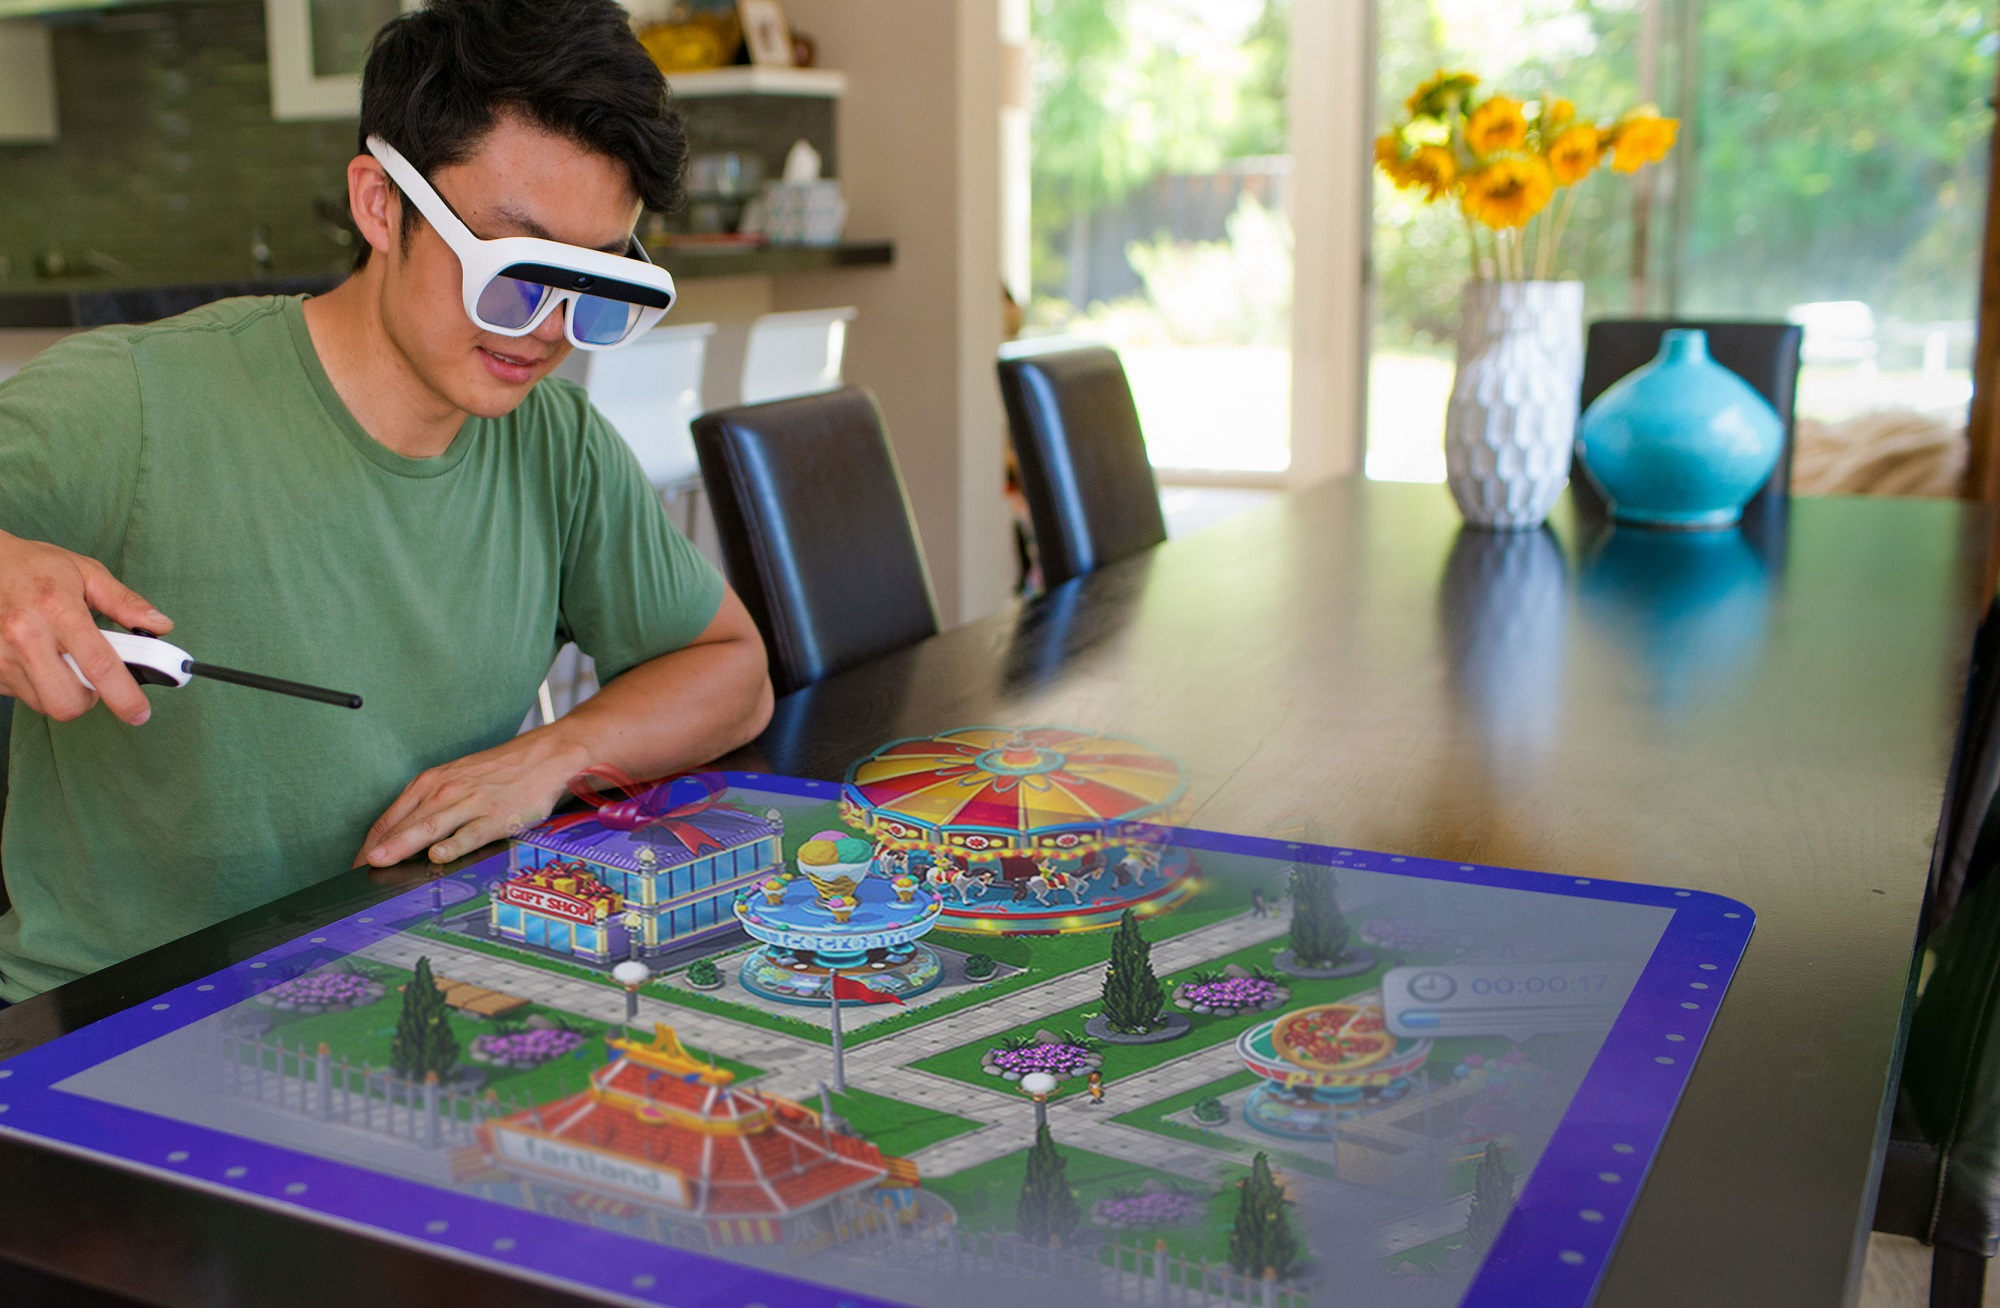 tilt five carnival ar tabletop game